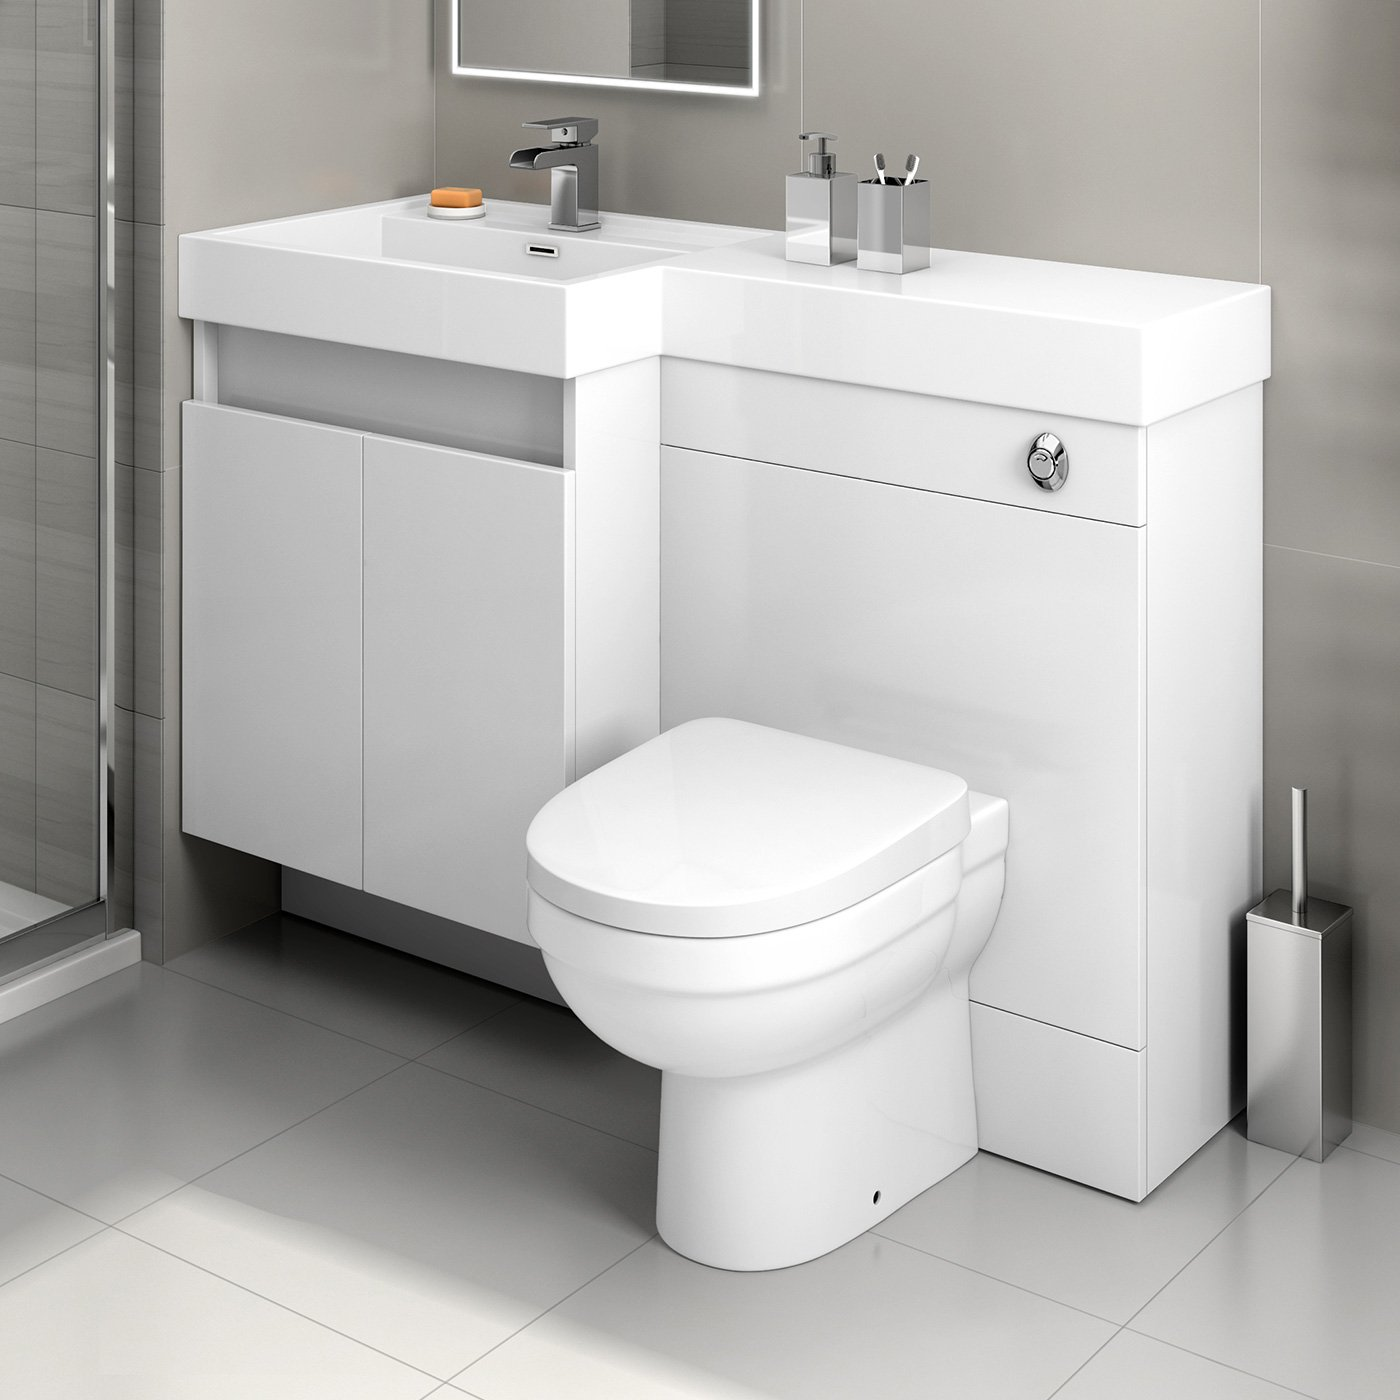 1200mm White Vanity Unit Back to Wall Toilet Bathroom Sink Furniture ...